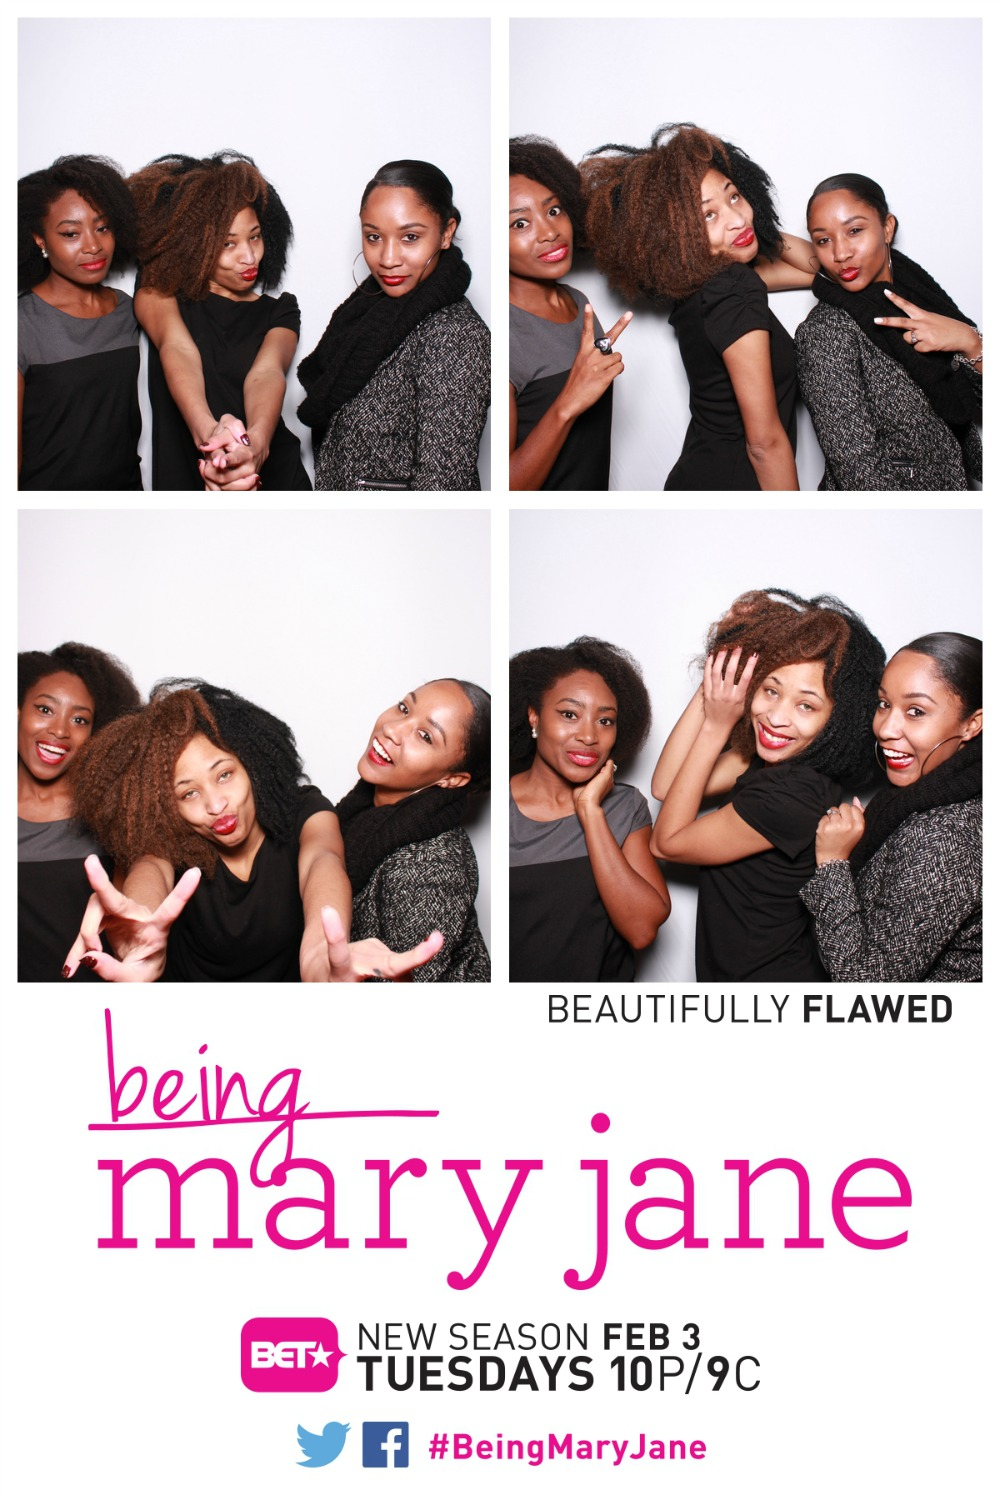 BEING-MARY-JANE-BET-SEASON-2-KIWI-THE-BEAUTY-BOOTH9